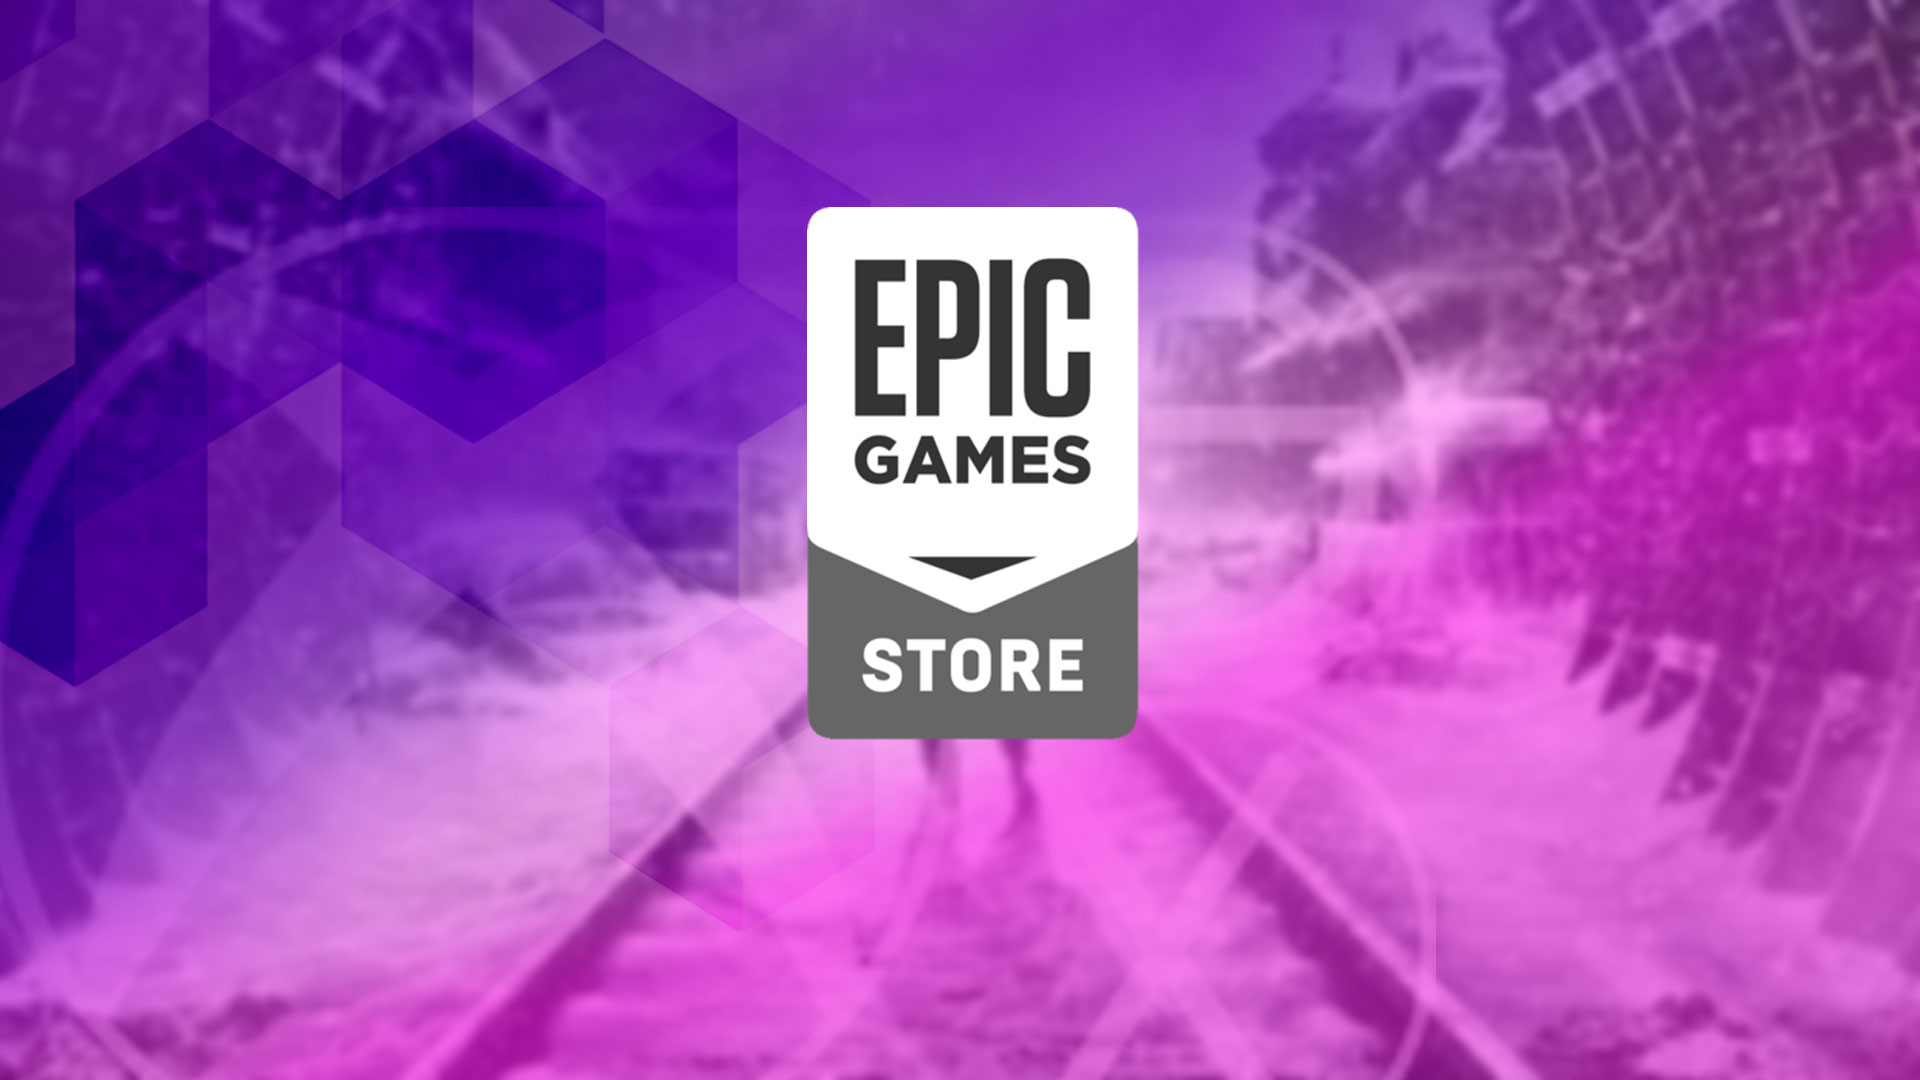 Epic Games pays millions to compete with other digital game storefronts